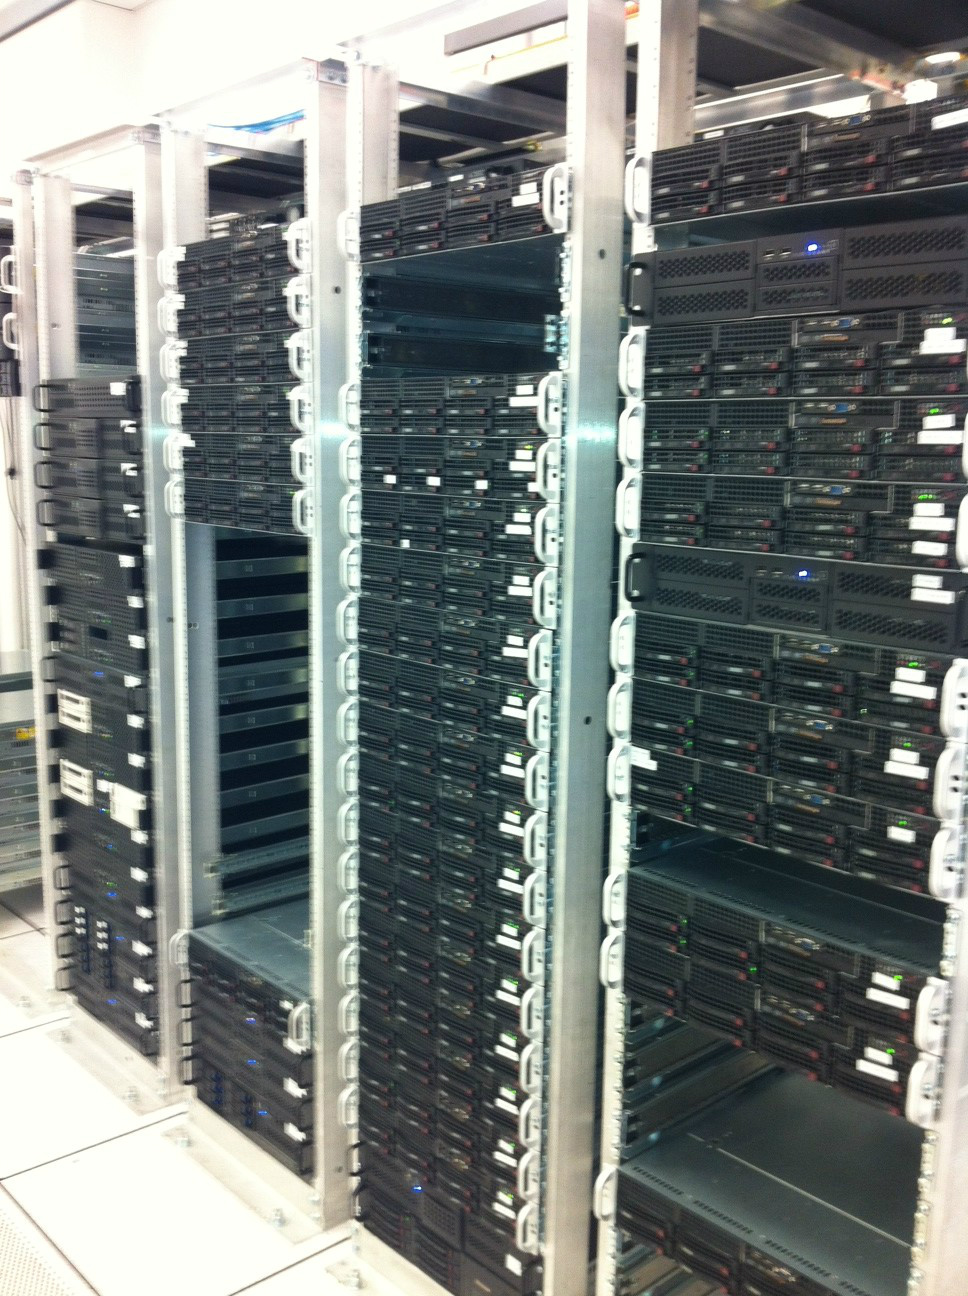 Cari.net Cloud Datacenter server racks for dual power, dual switching, and custom or non-standard server designs